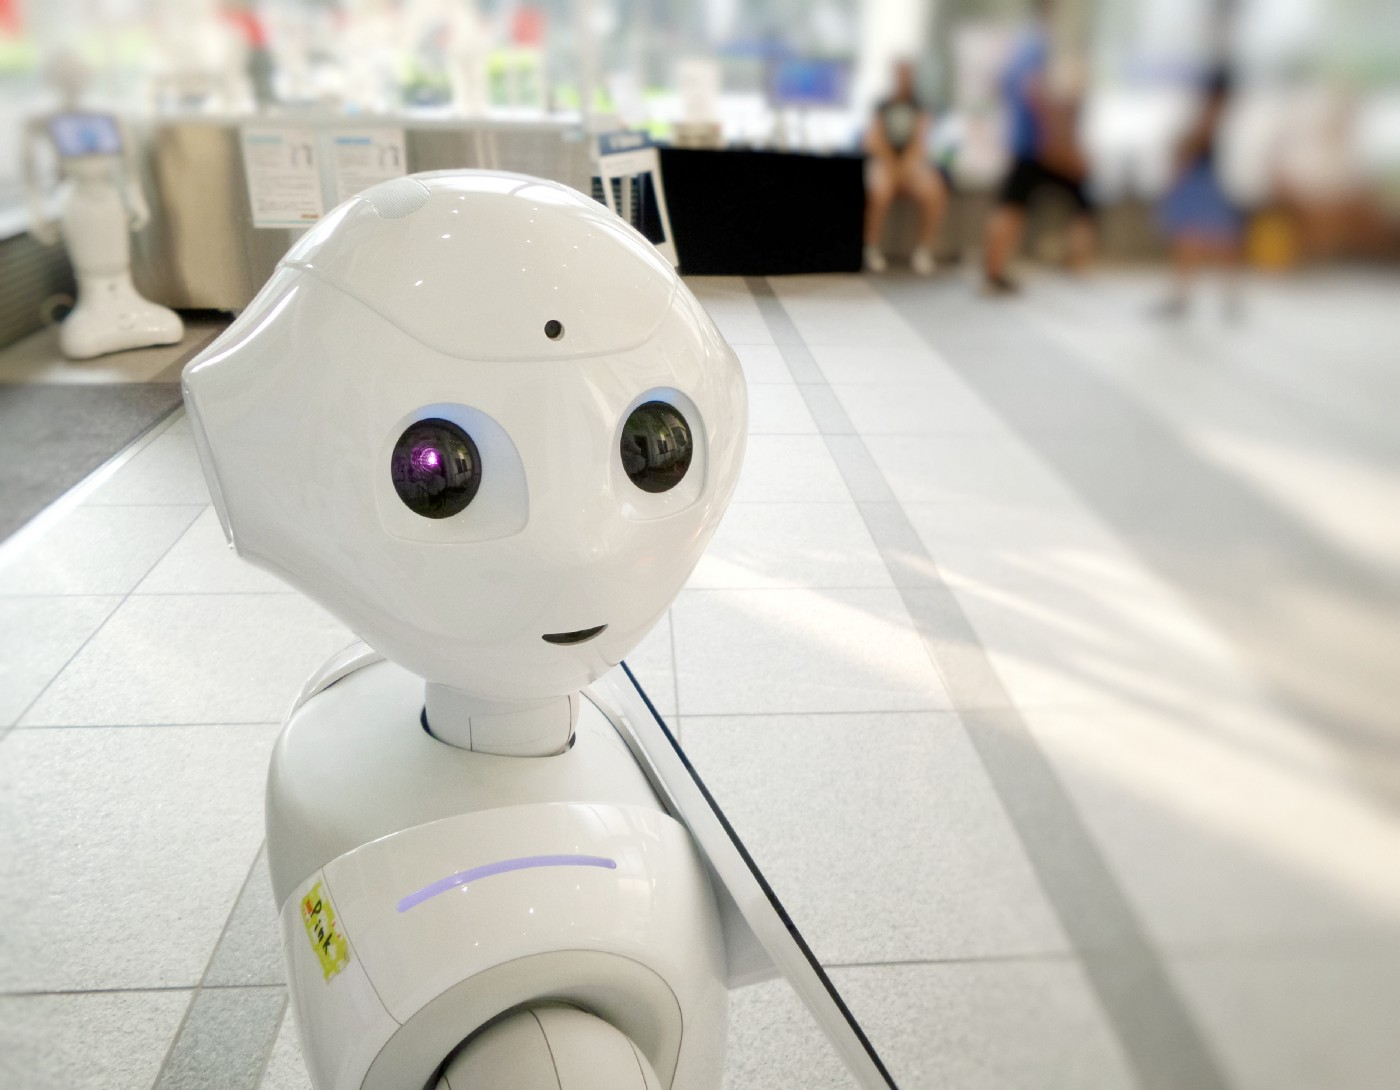 Pepper the robot provides AI based customer service.